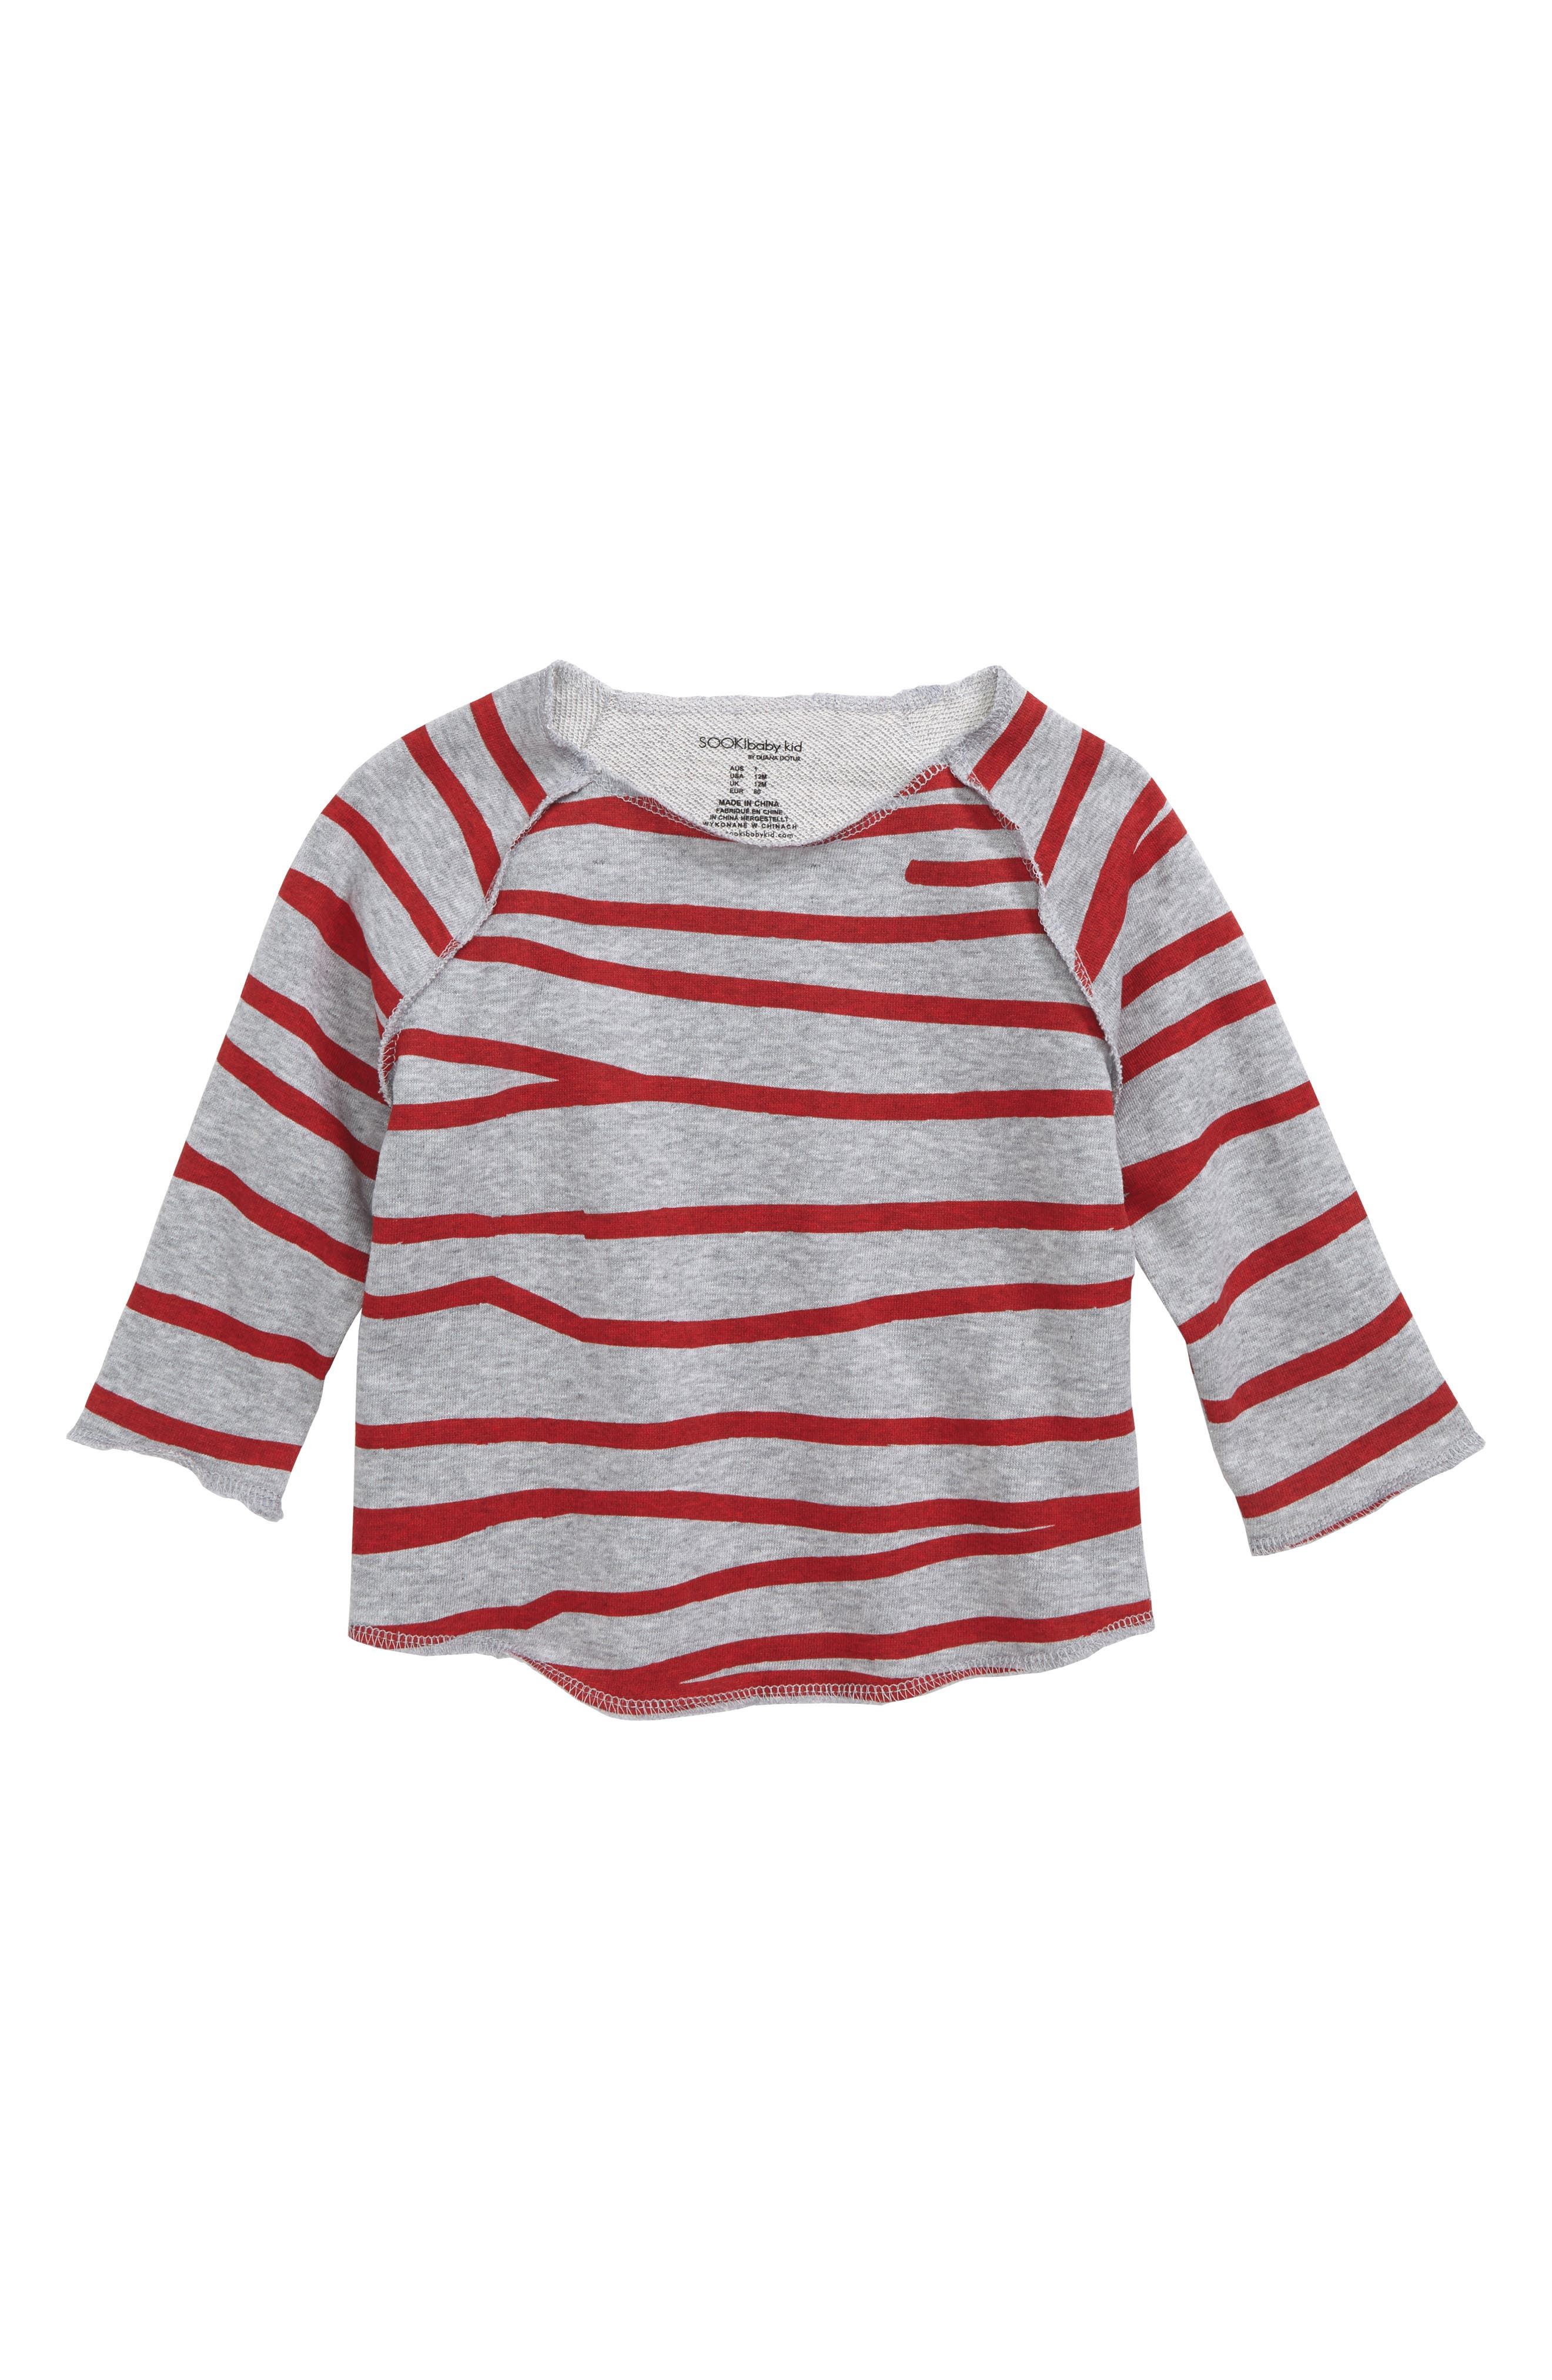 Alternate Image 1 Selected - SOOKIbaby Stripe Shirt (Baby)